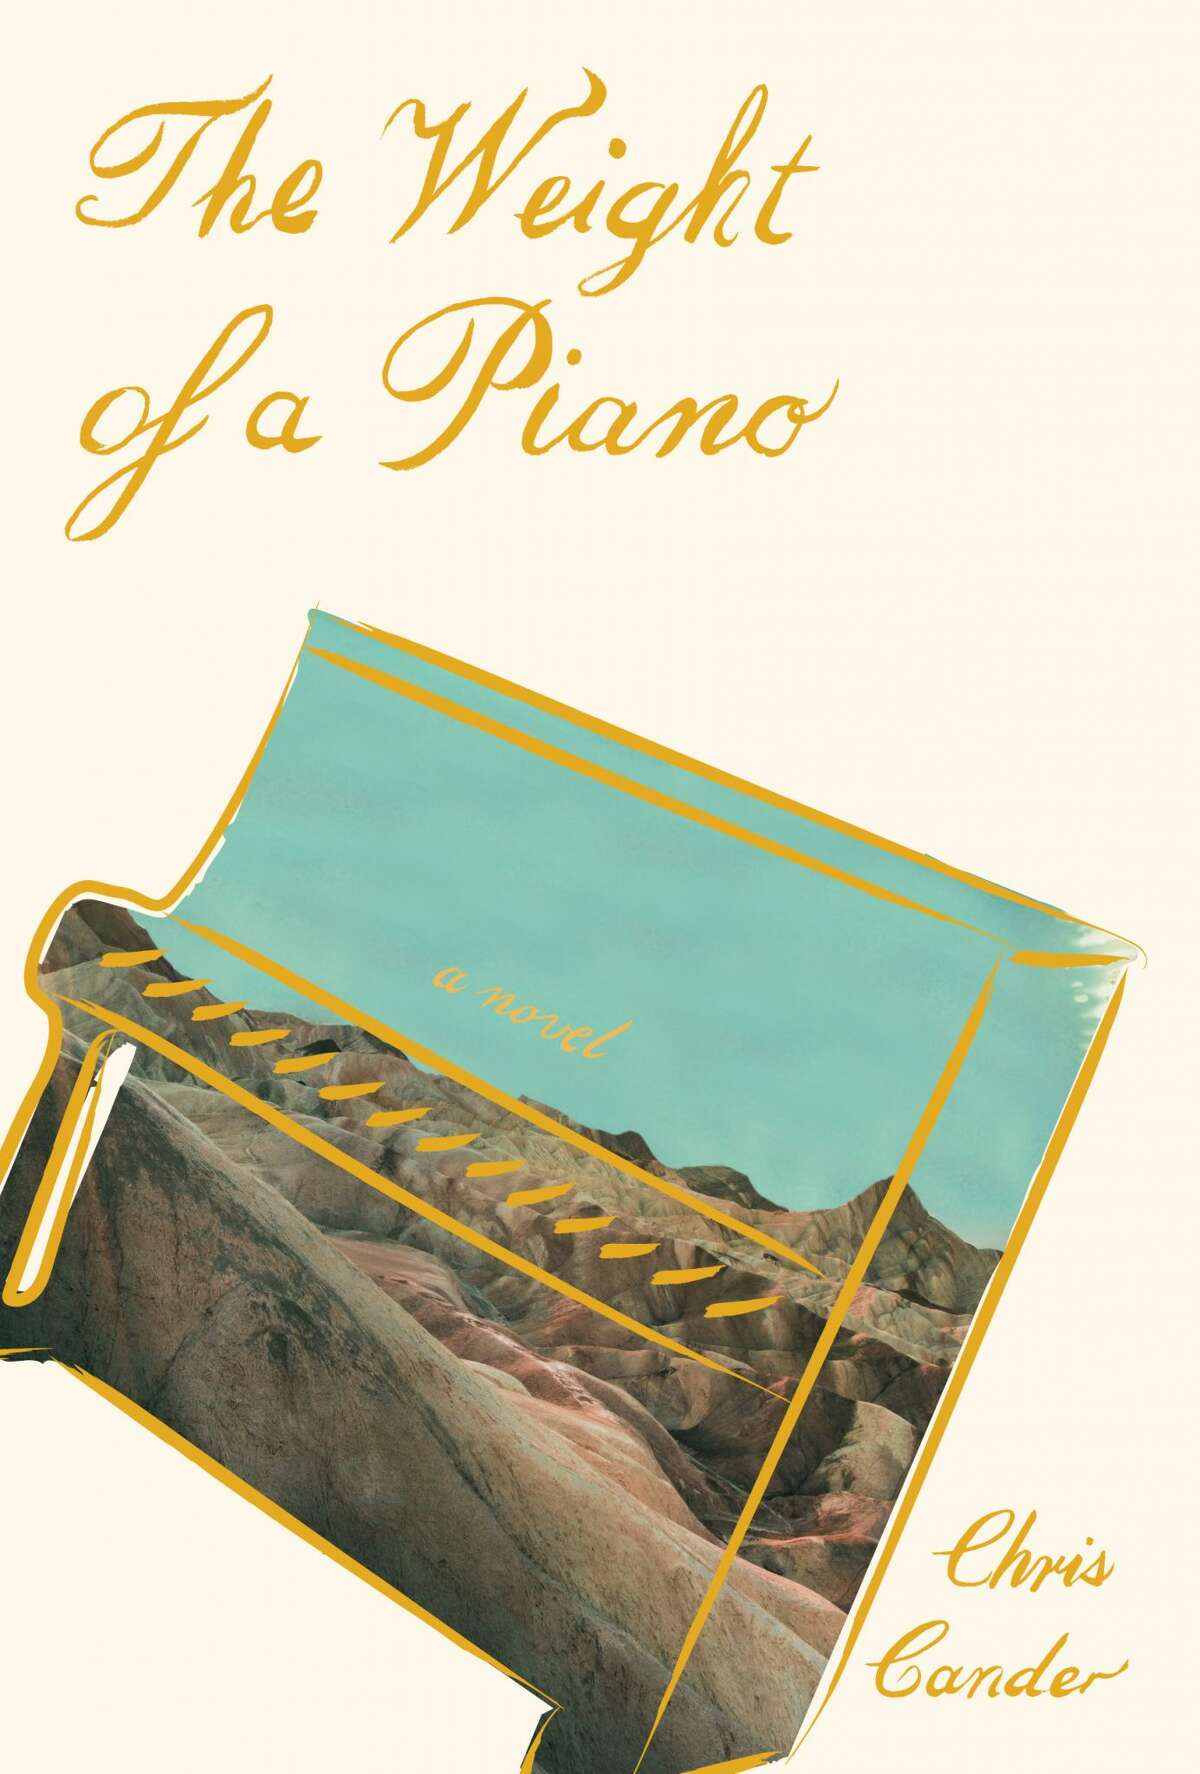 cover image for The Weight of a Piano, a new novel by Houston writer Chris Cander